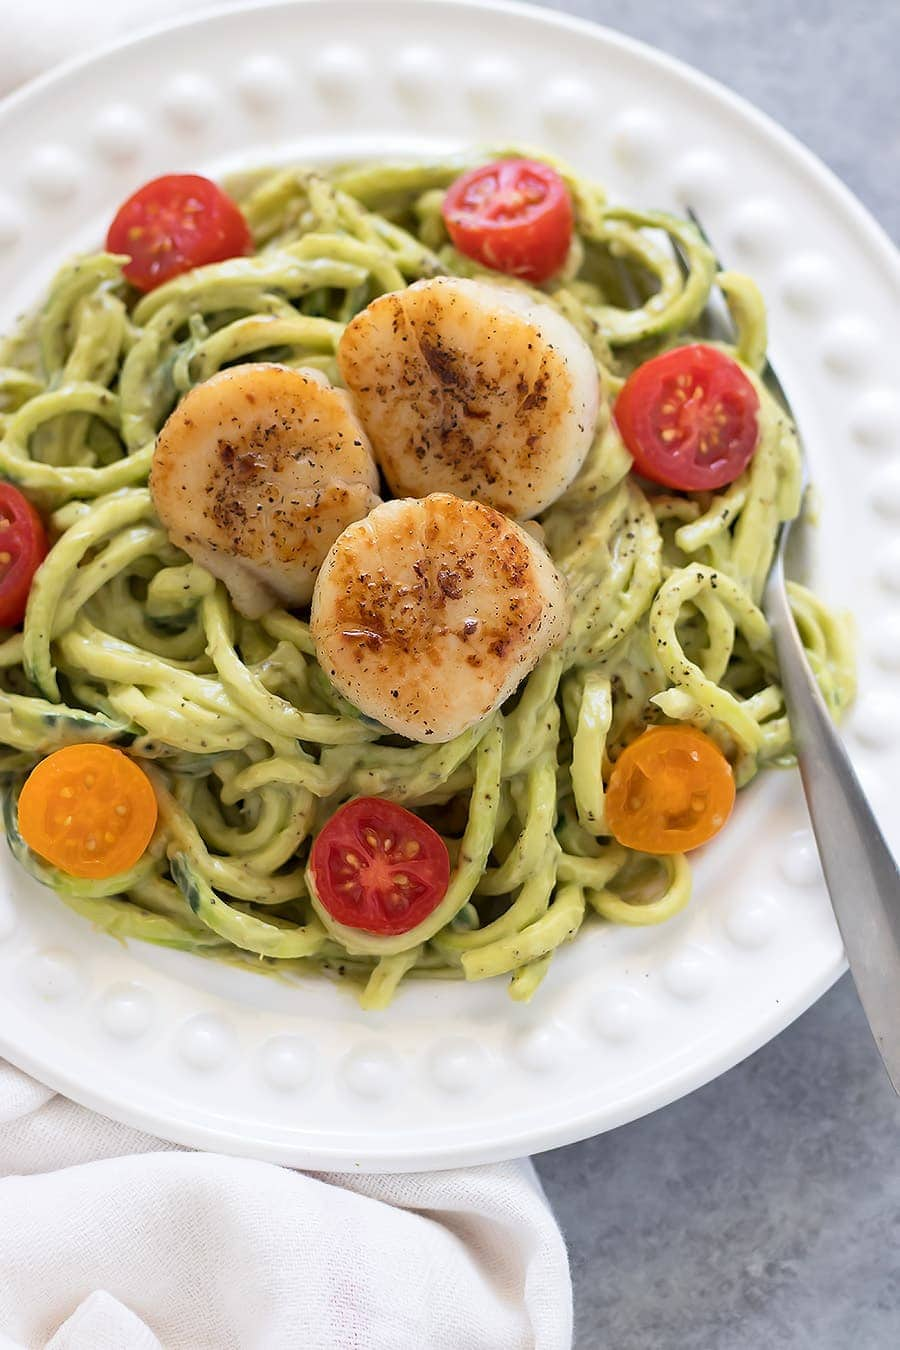 Zucchini noodles topped with a creamy avocado sauce and seared scallops. No dairy, no preservatives, no added sugars, andabsolutely delicious!